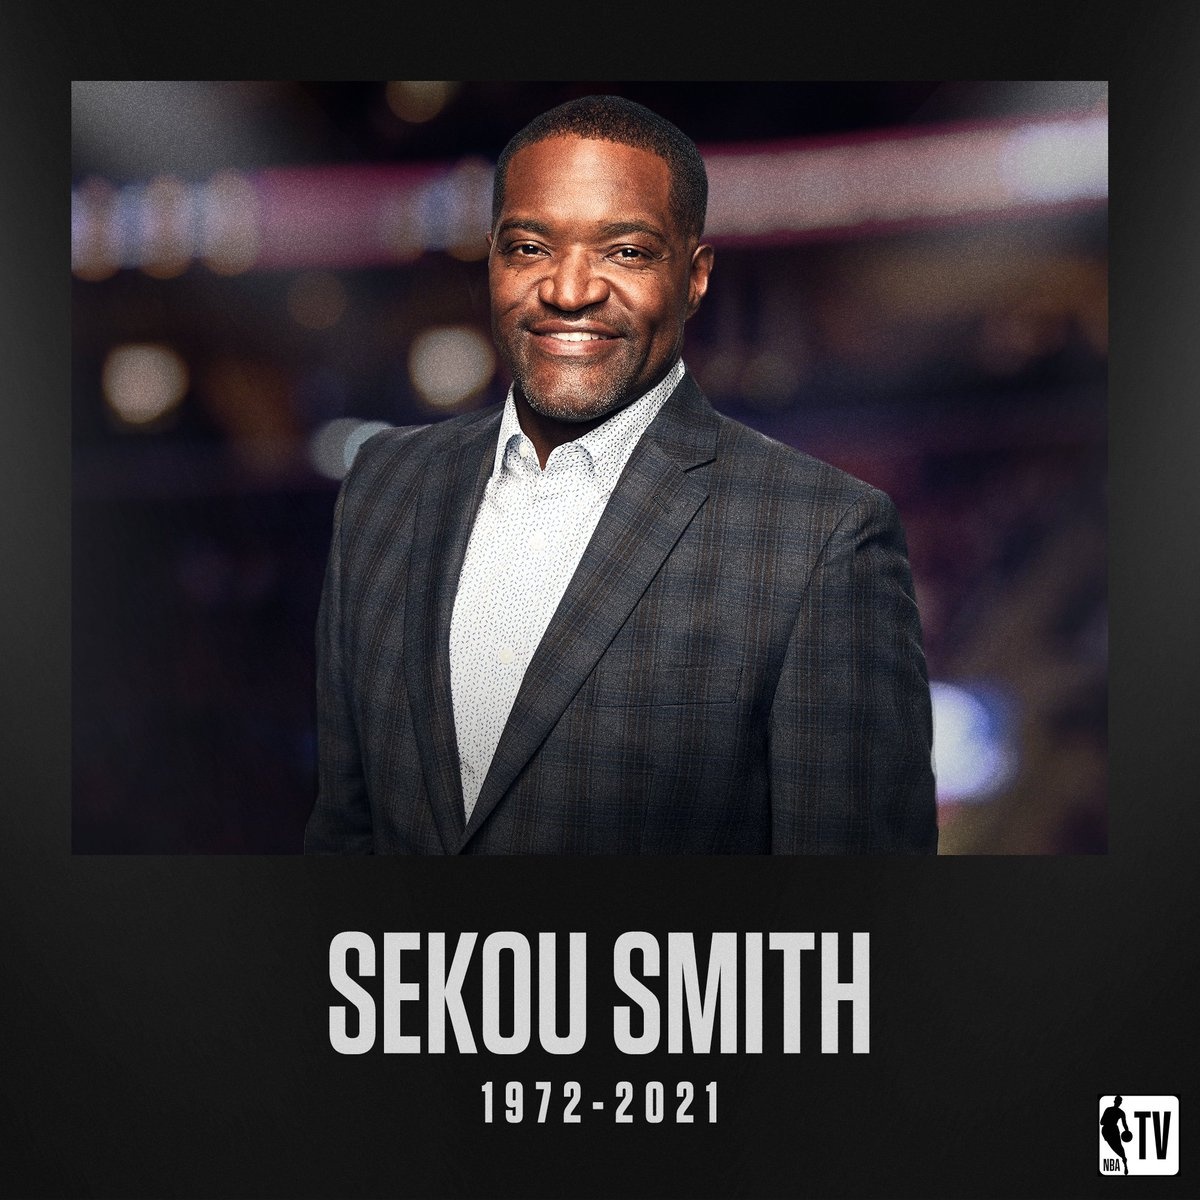 The Turner Sports family mourns the loss of our very own, Sekou Smith.  Our thoughts are with his family and friends.